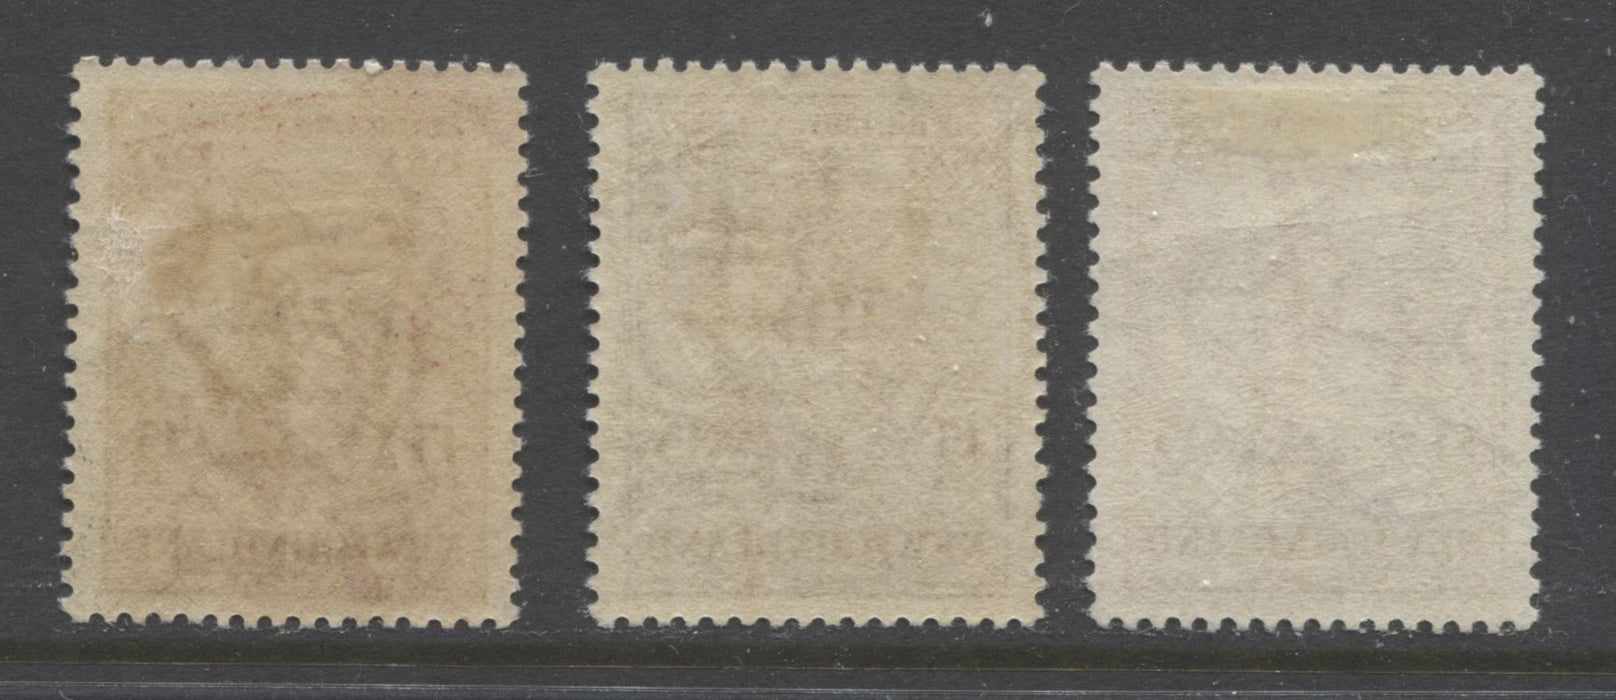 "Newfoundland #222-222i 1933 Sir Humphrey Gilbert Issue, Specialty Group of 3 of the 15c Claret ""Gilbert on the Squirrel"" Showing Different Perforations, Shades and Inverted Watermarks Brixton Chrome"